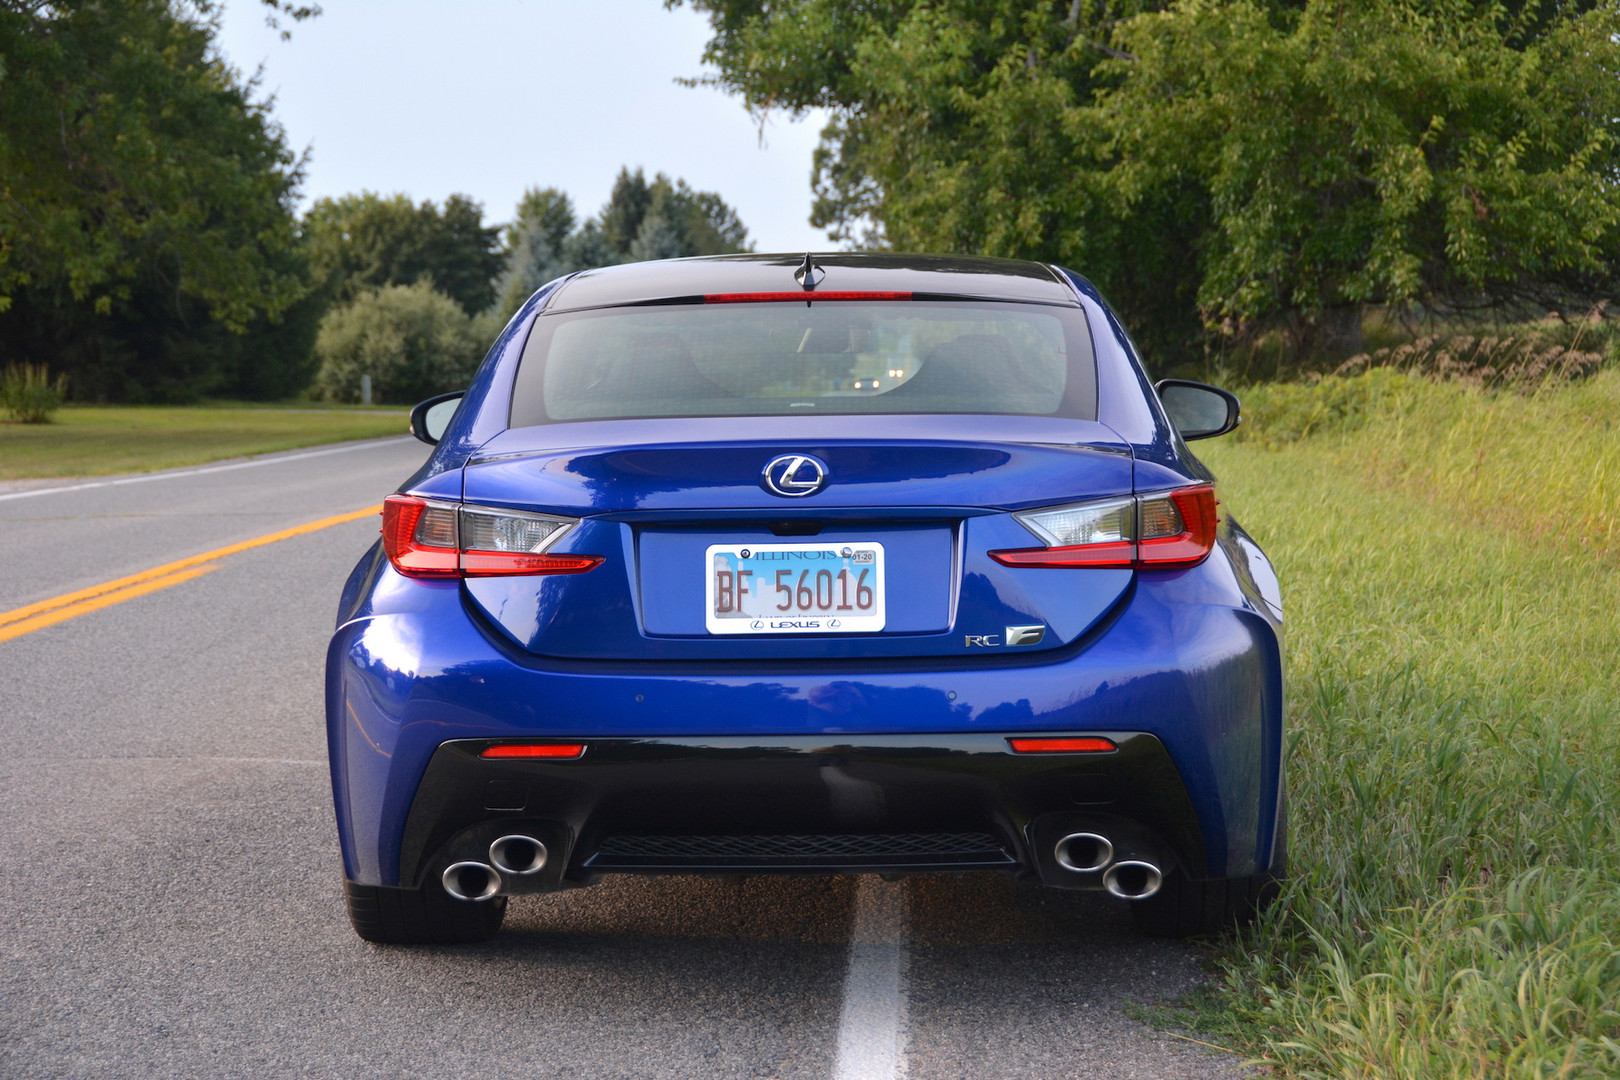 2019 Lexus RC F Rear View